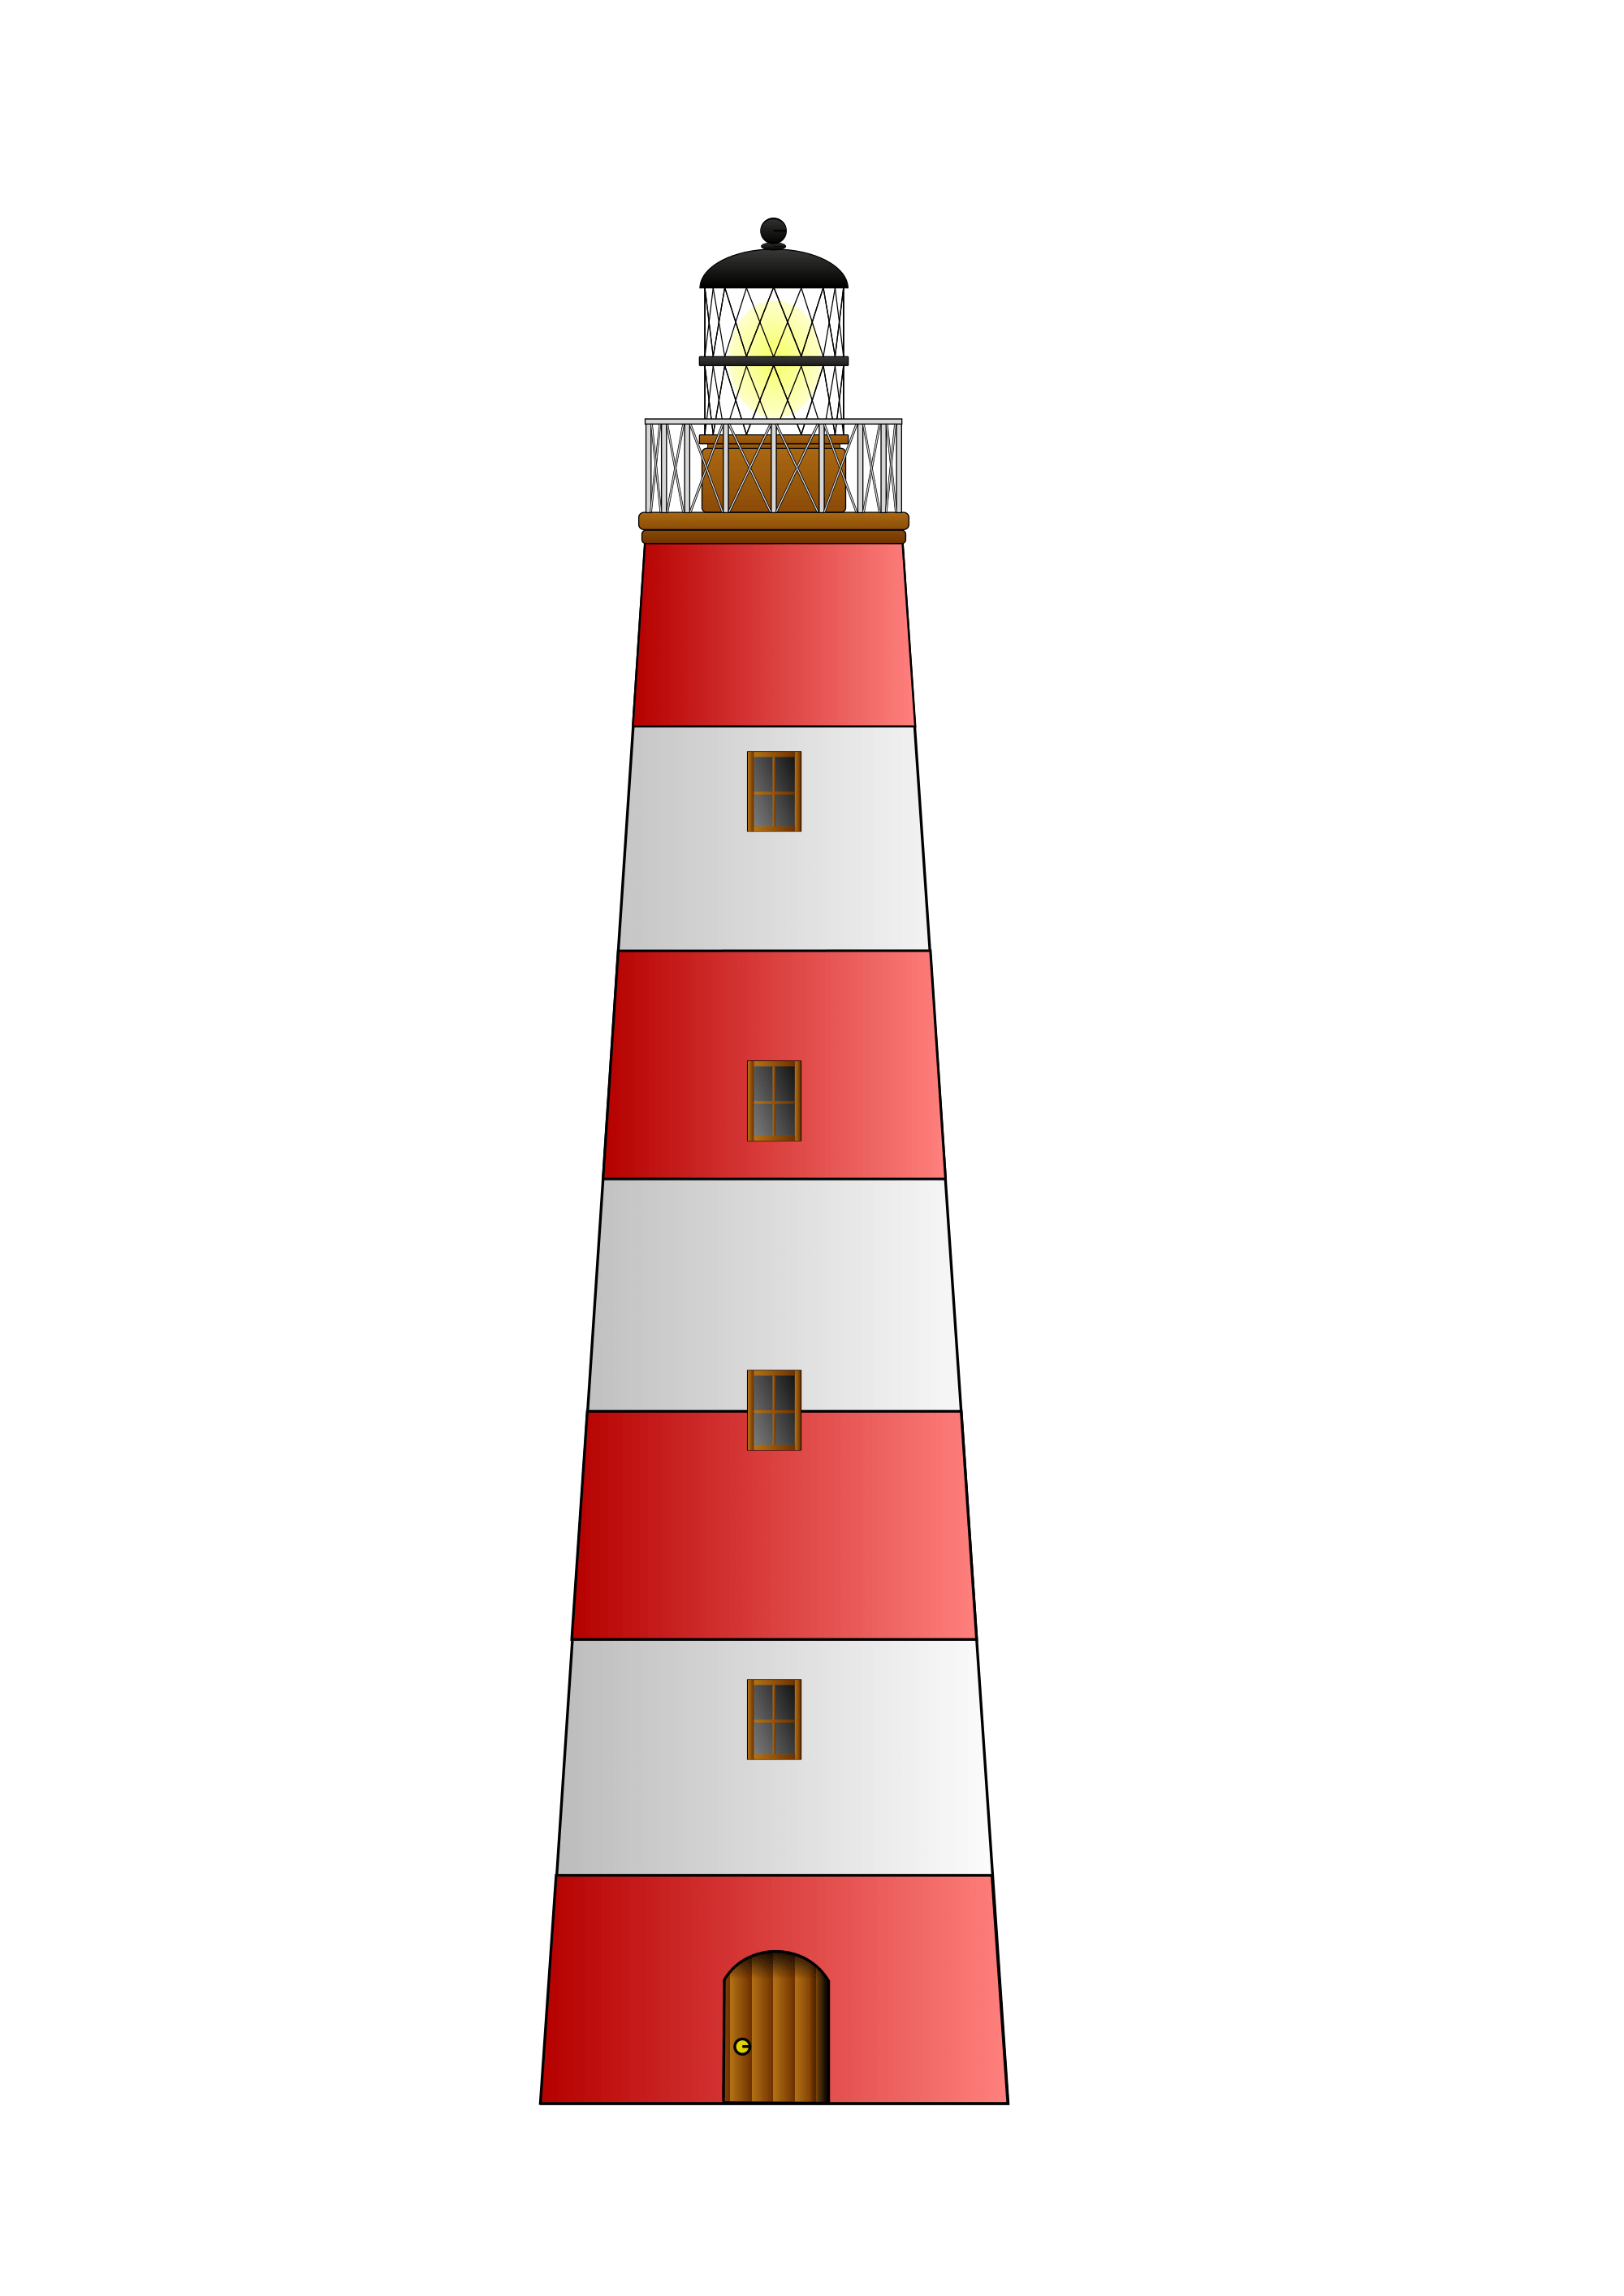 Light house png. Red white lighthouse clipart